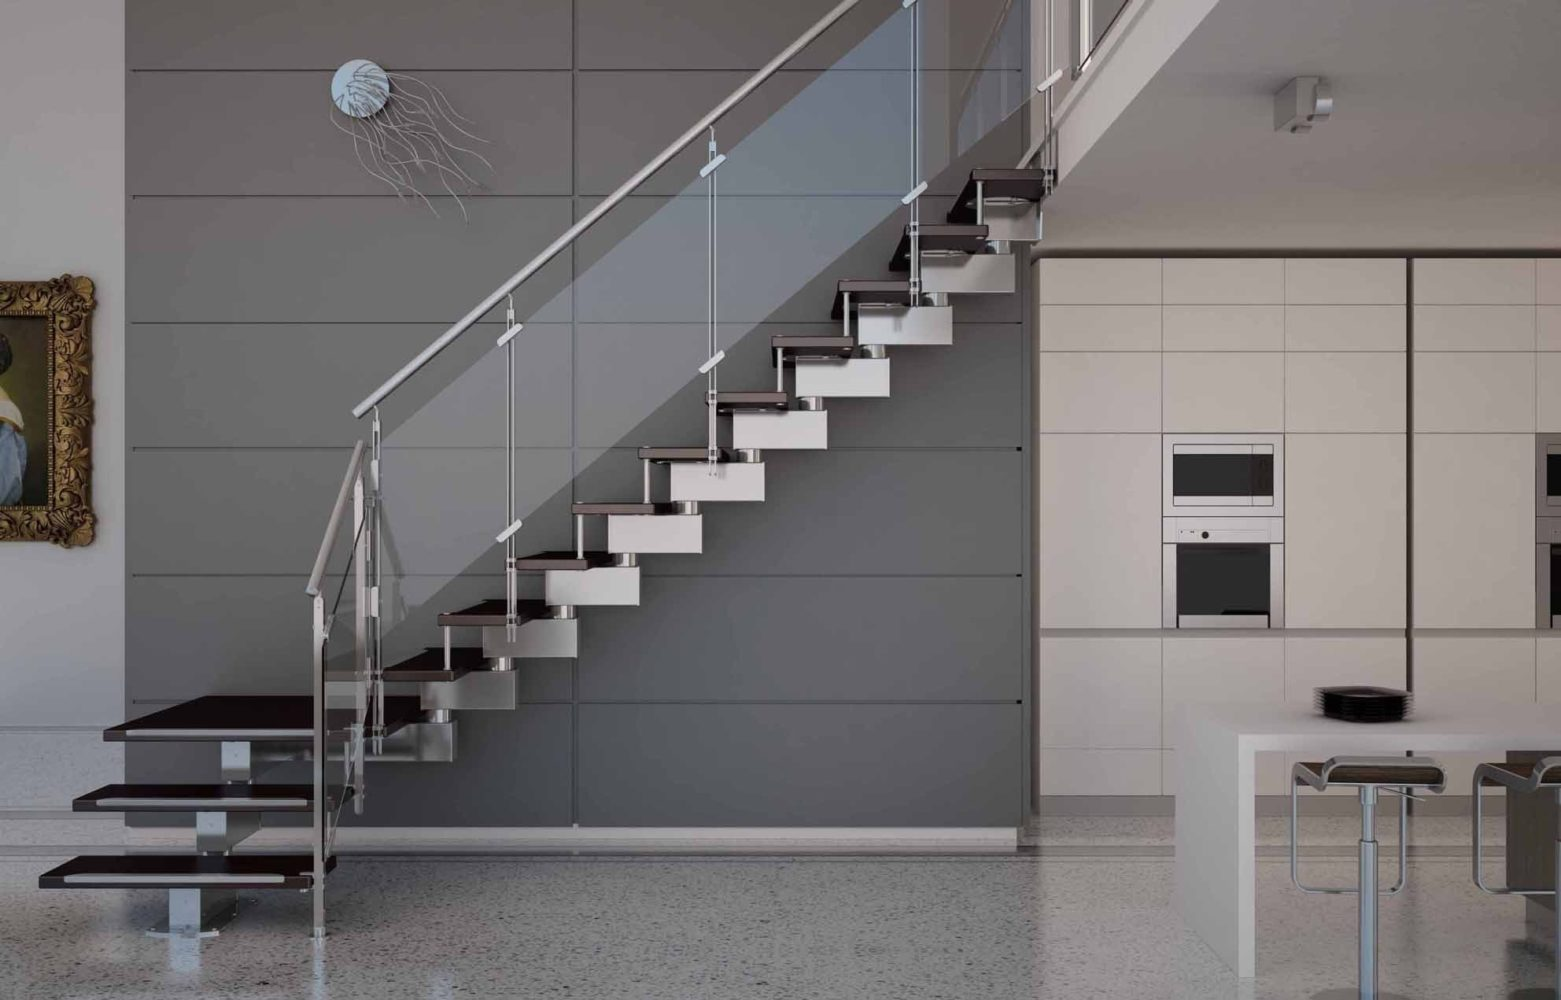 Staircase with the glass railing - Task Masters, Dubai